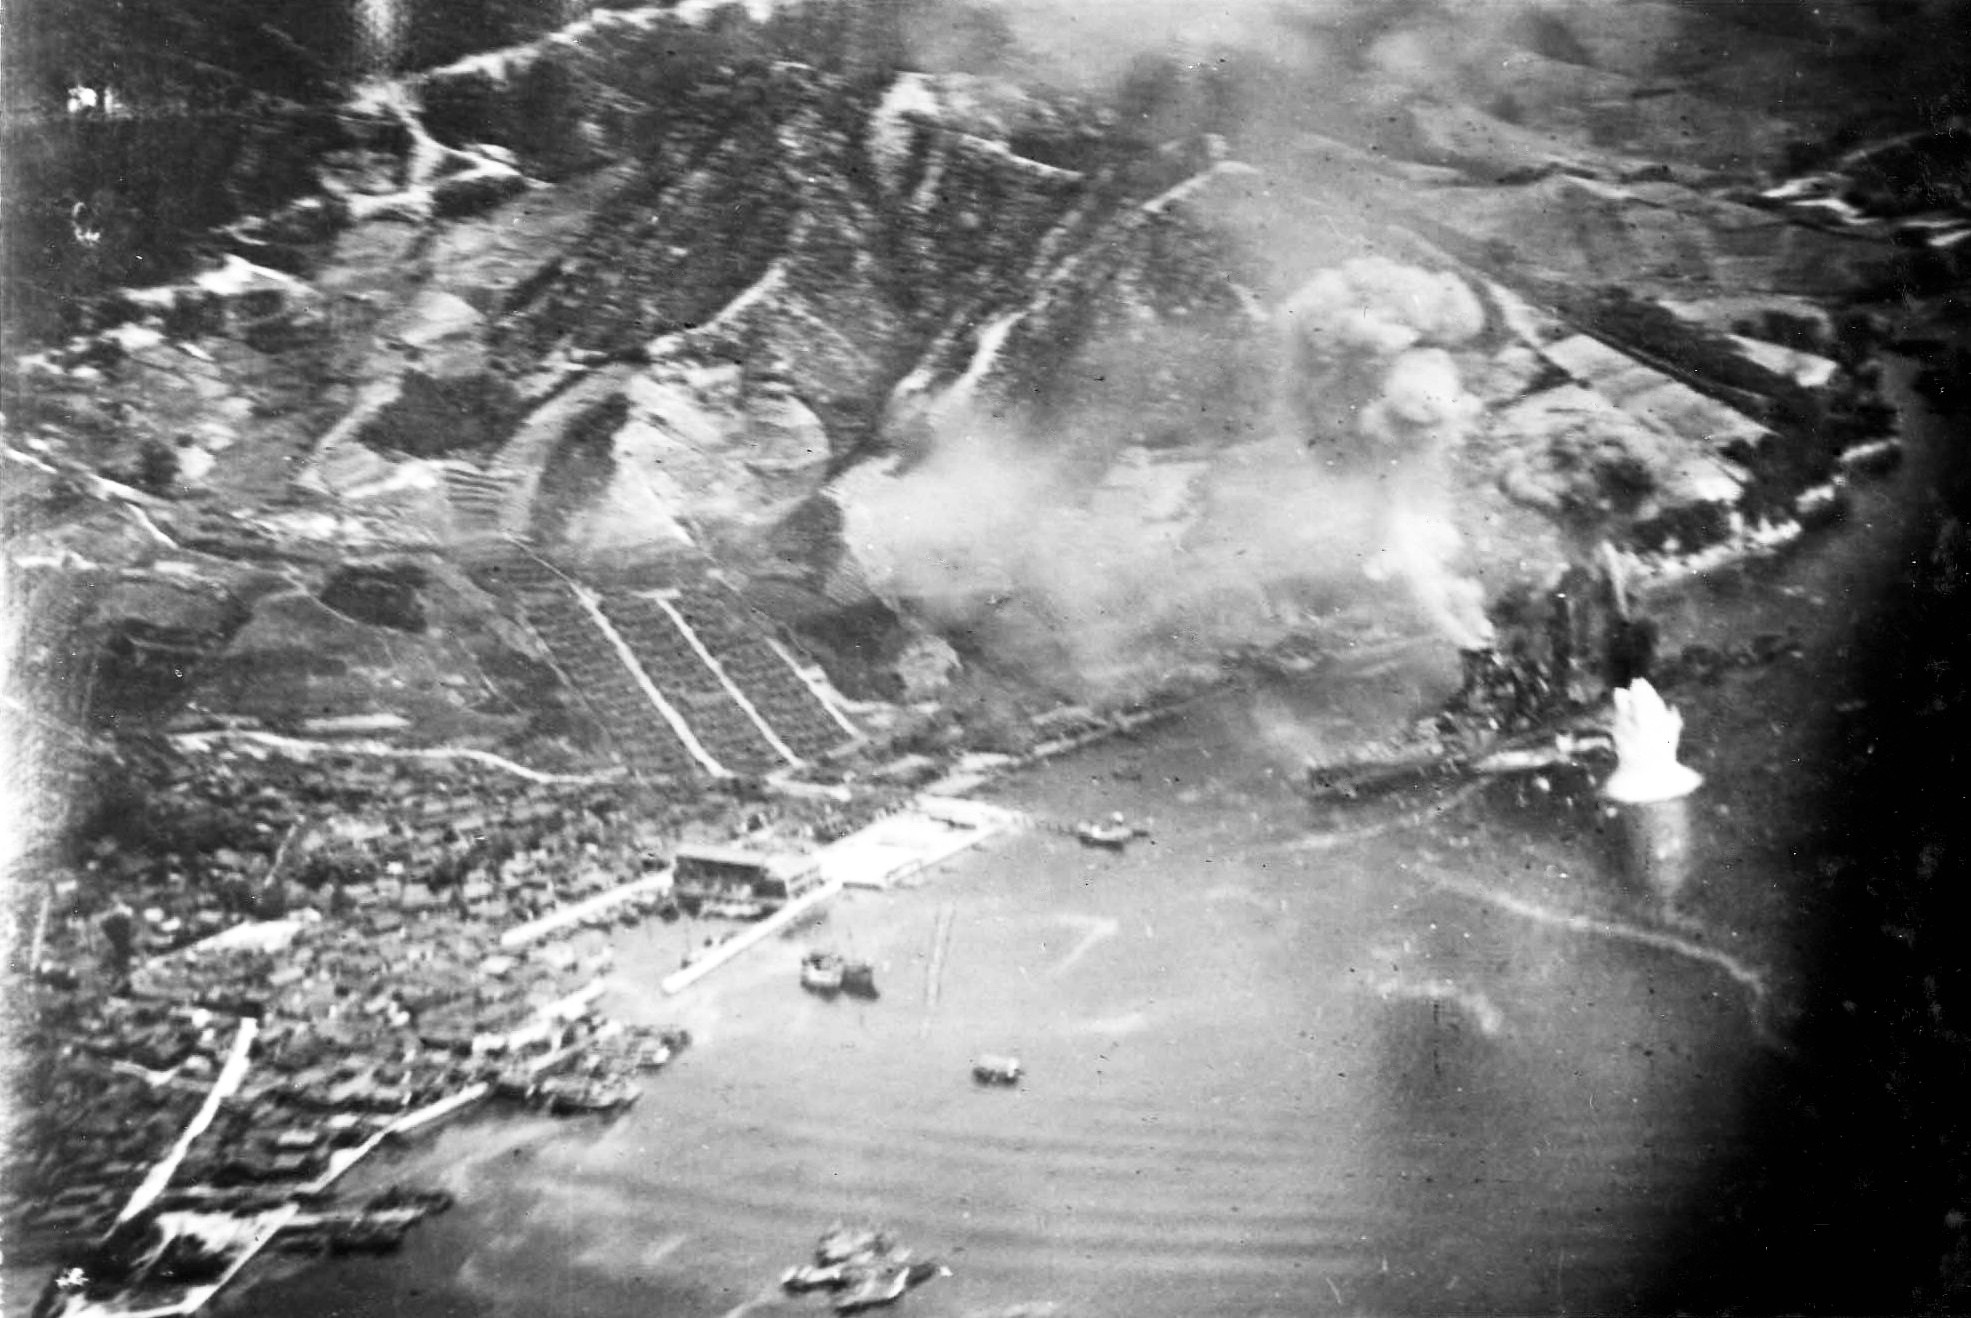 Bombing of  Haruna  on 28 July, 1945, photographed by a plane launched from the  USS   Wasp .